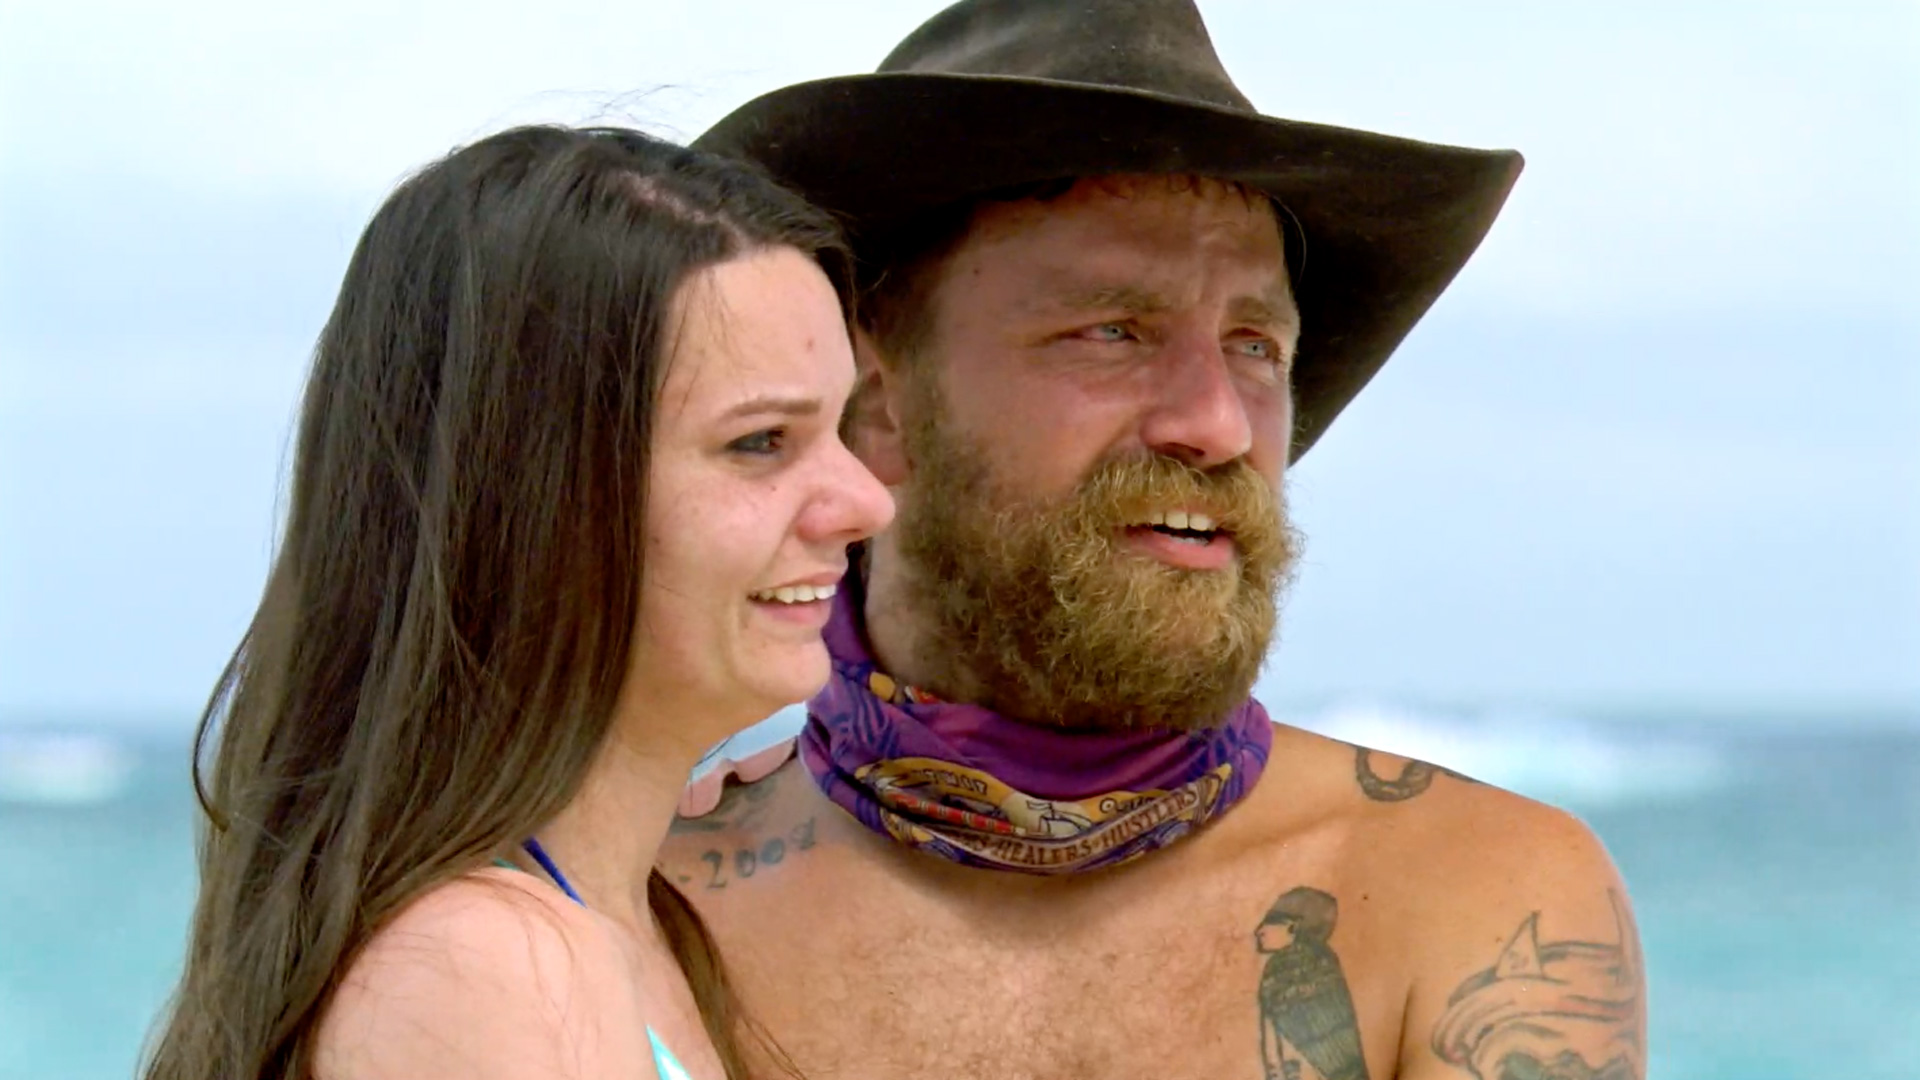 Season 35: Ben Driebergen is surprised by his loving wife.